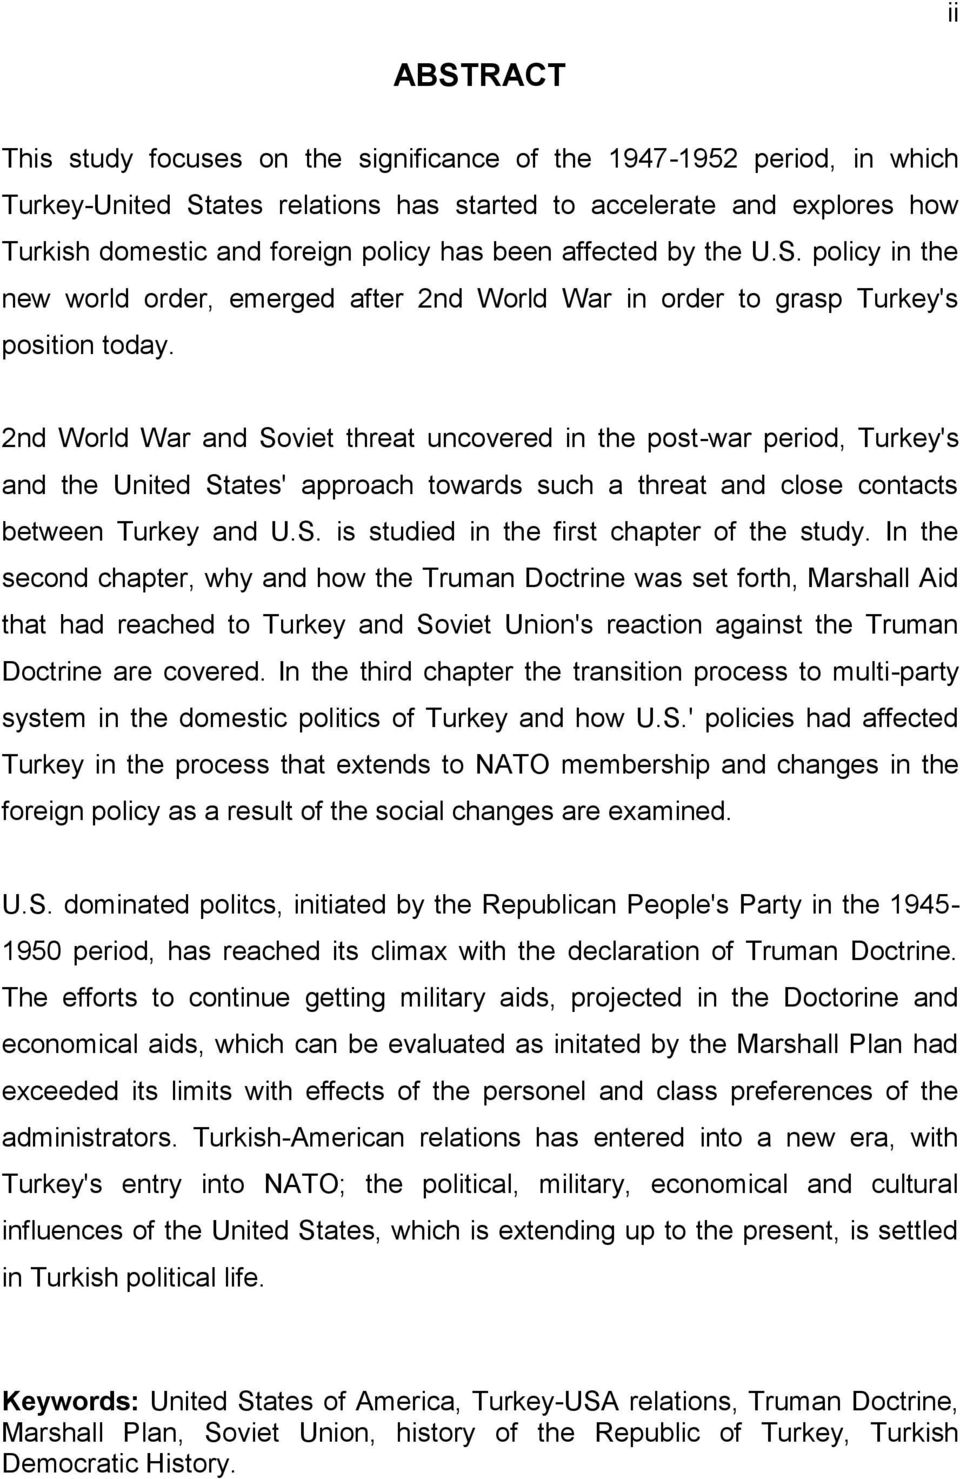 2nd World War and Soviet threat uncovered in the post-war period, Turkey's and the United States' approach towards such a threat and close contacts between Turkey and U.S. is studied in the first chapter of the study.